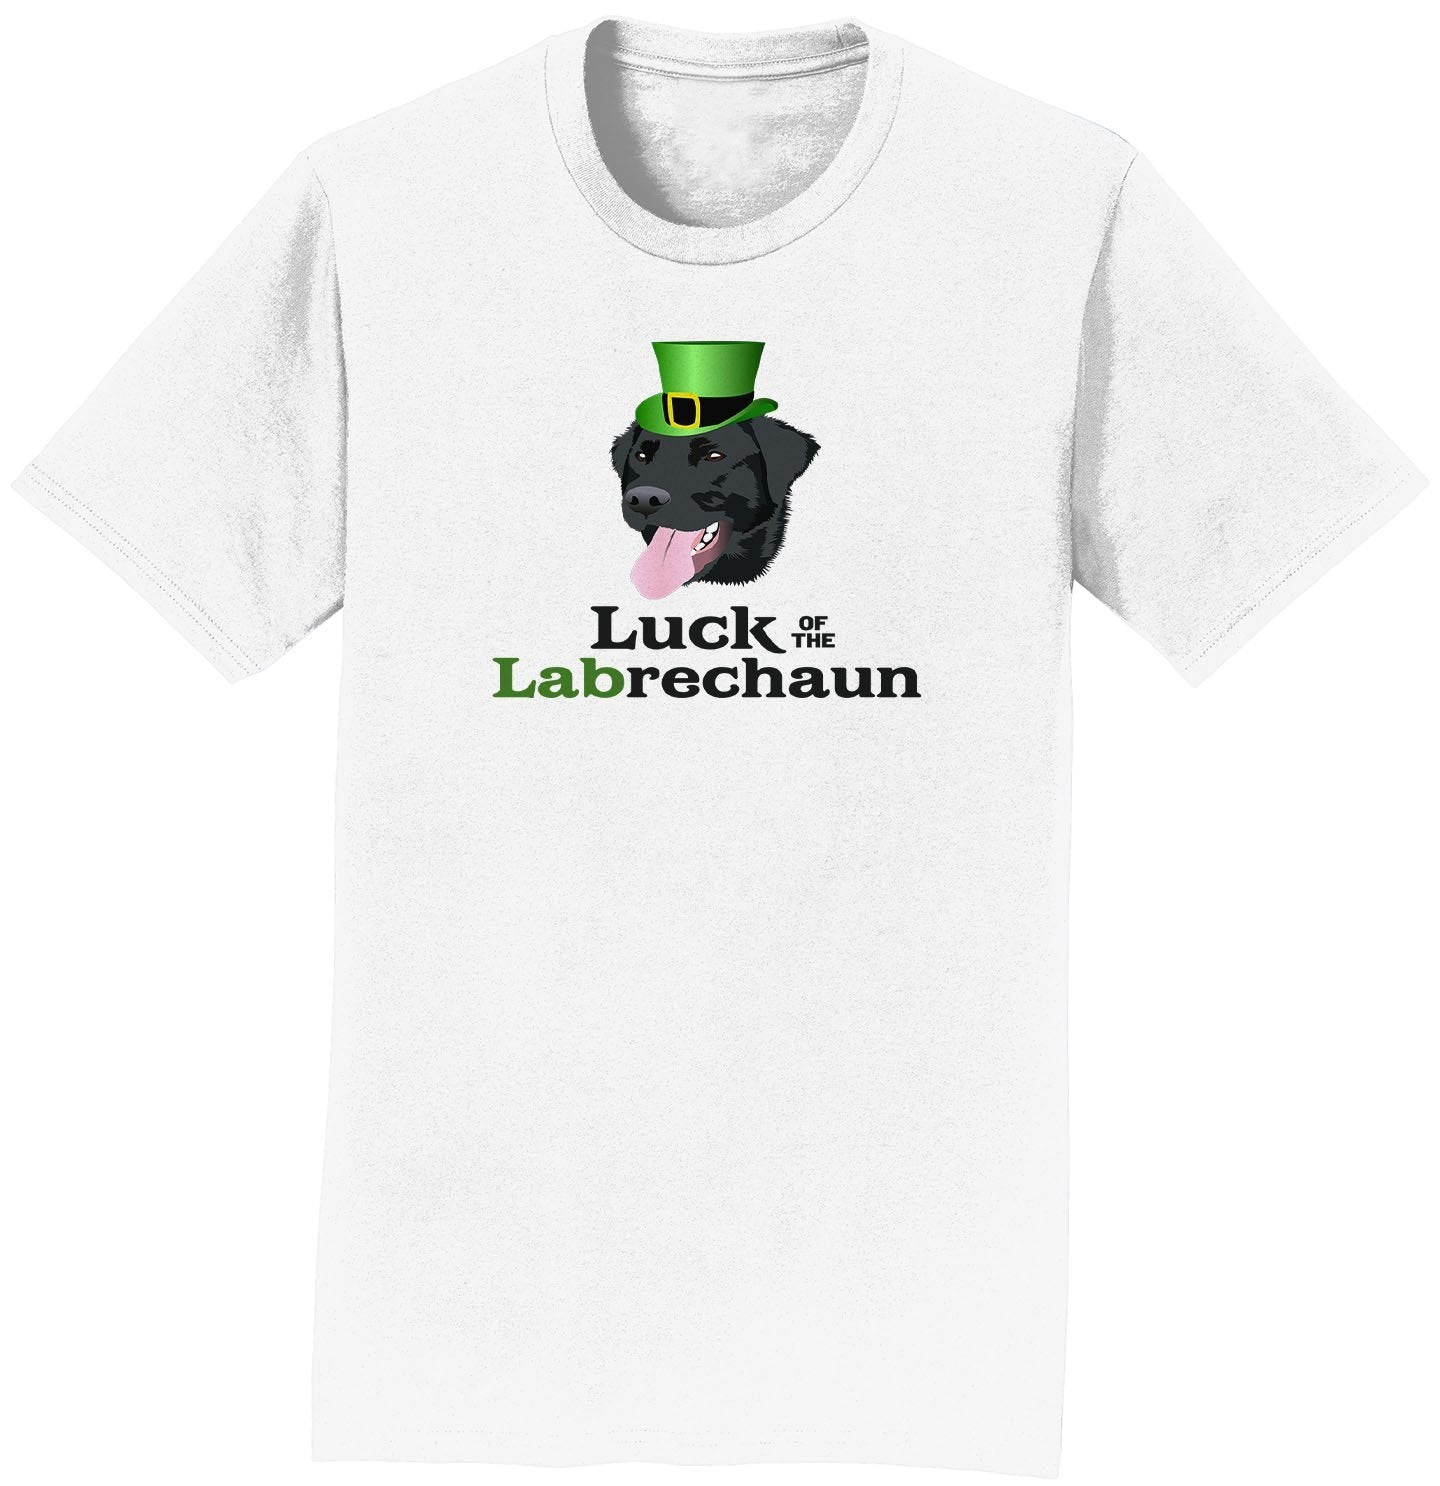 Luck of the Labrechaun - Adult Unisex T-Shirt